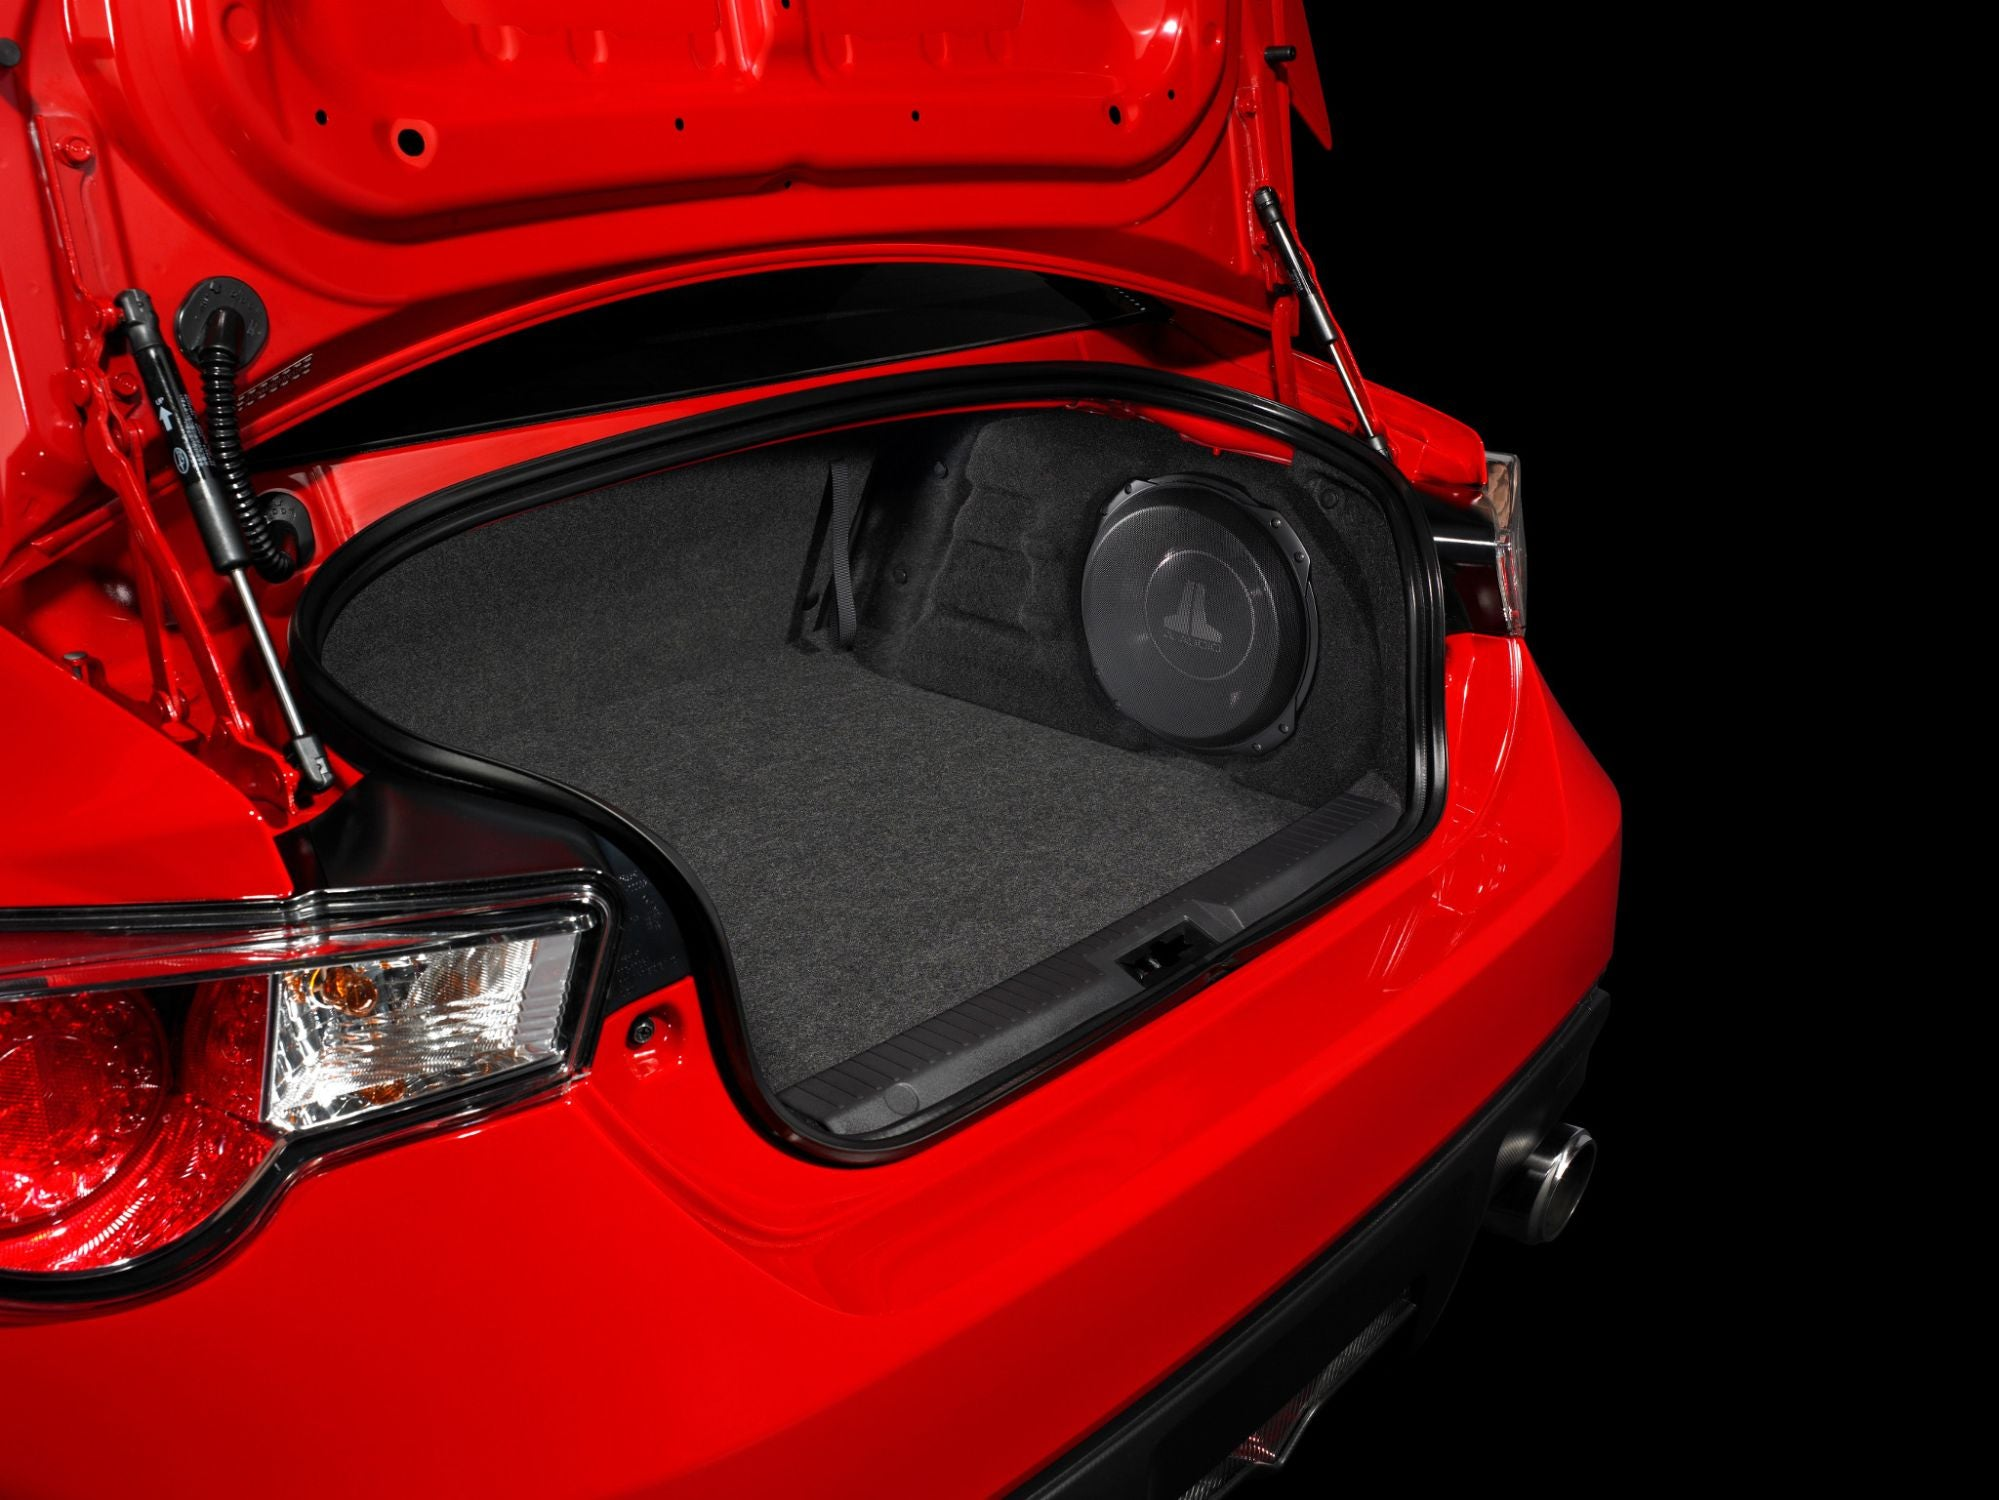 SB-S-BRZFRS-10TW3 Stealthbox Installed in Vehicle